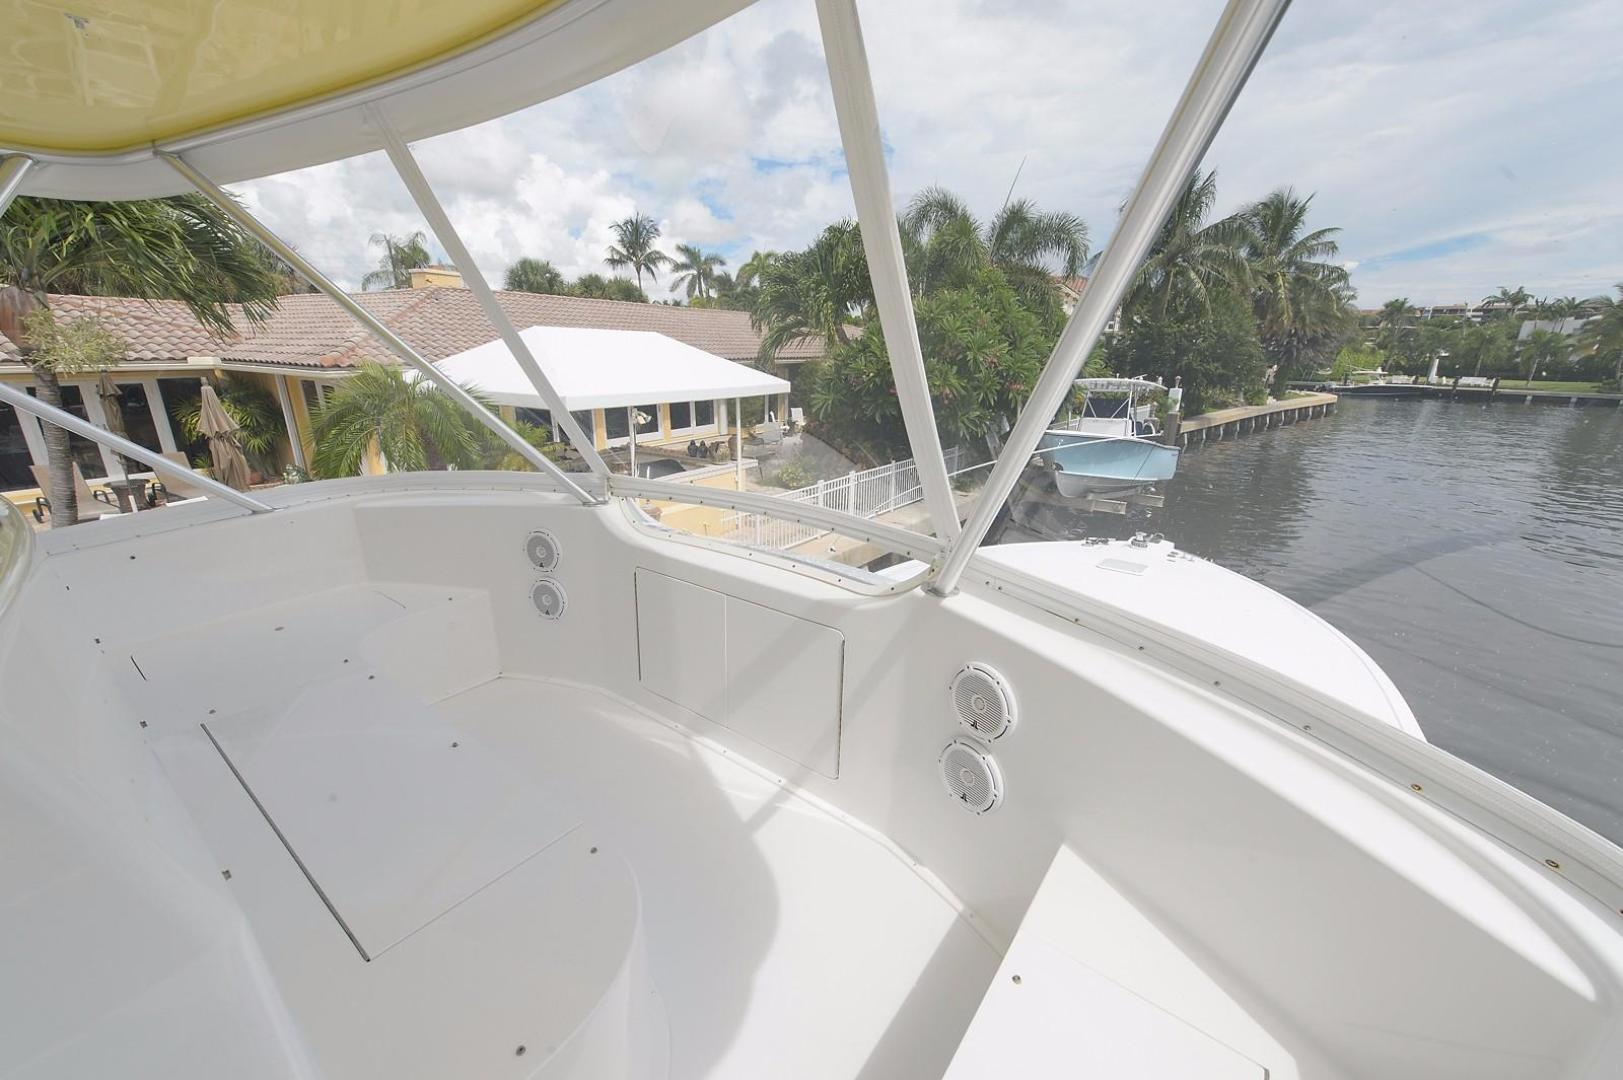 Viking-52 Convertible 2002-Double Eagle Boca Raton-Florida-United States-458736 | Thumbnail